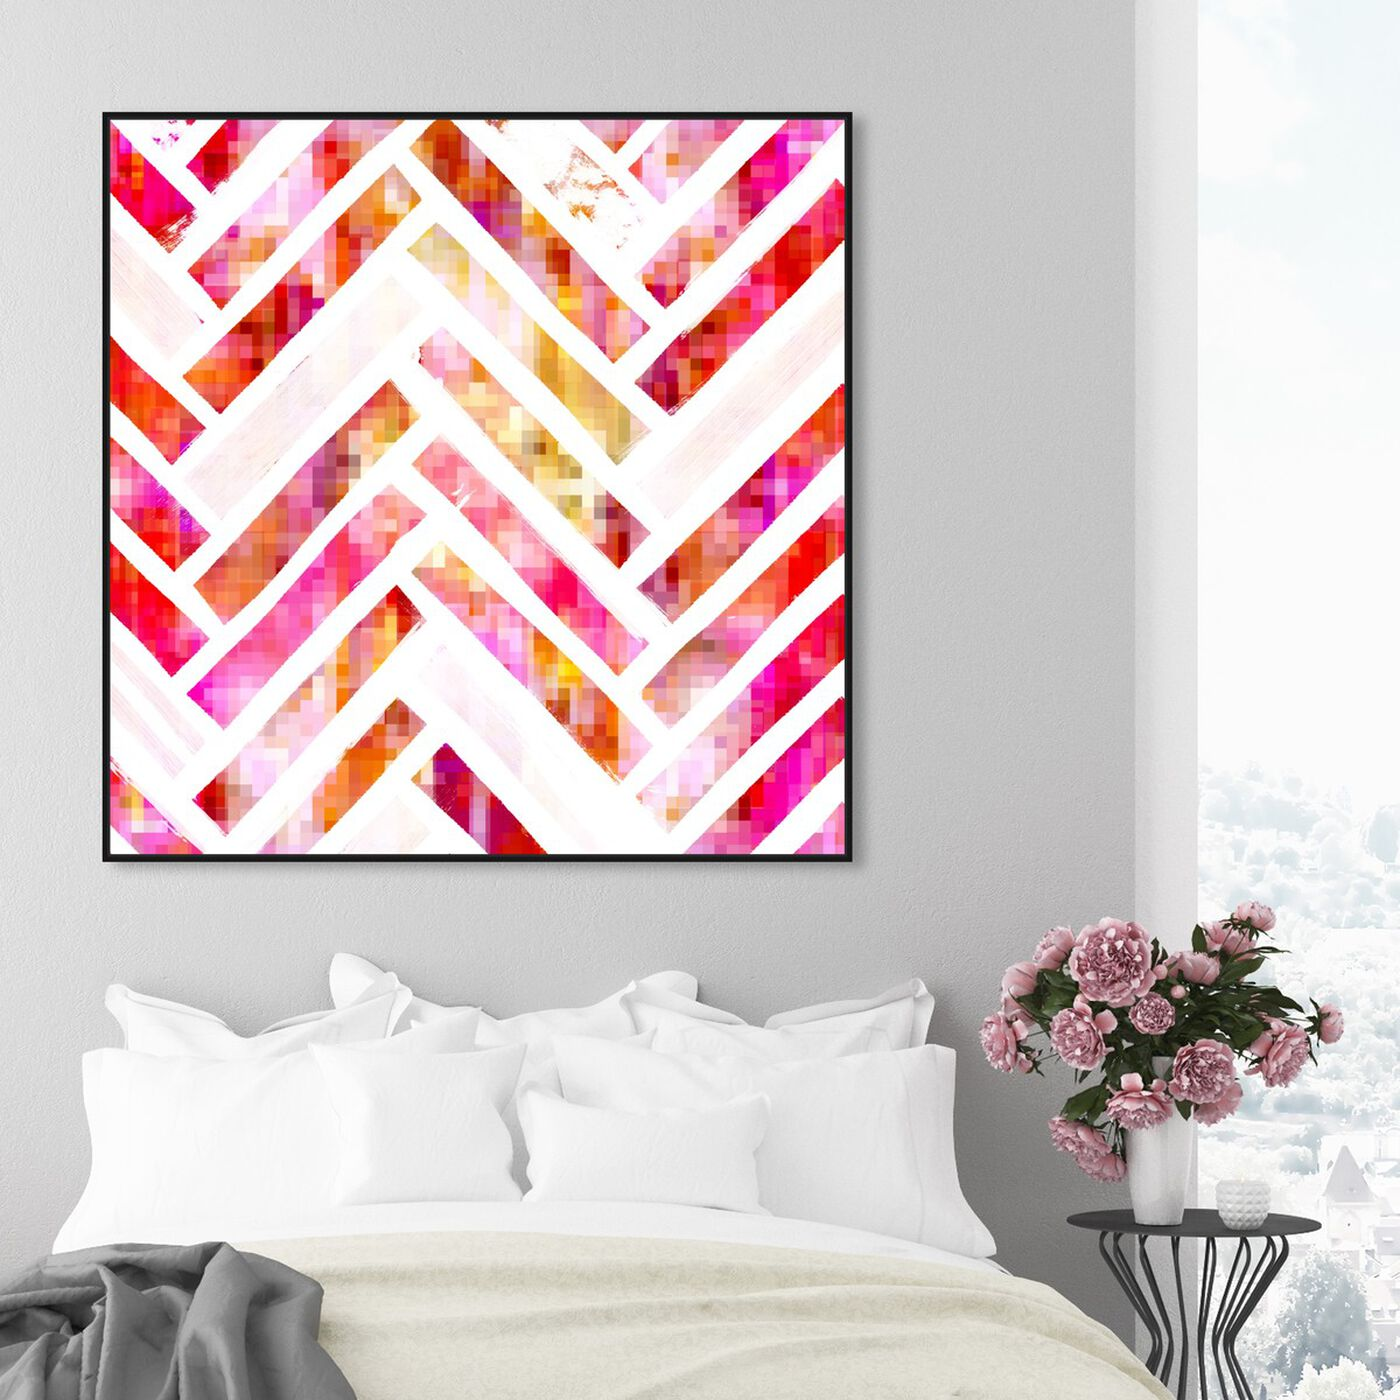 Hanging view of Sugar Flake Herringbone featuring abstract and patterns art.